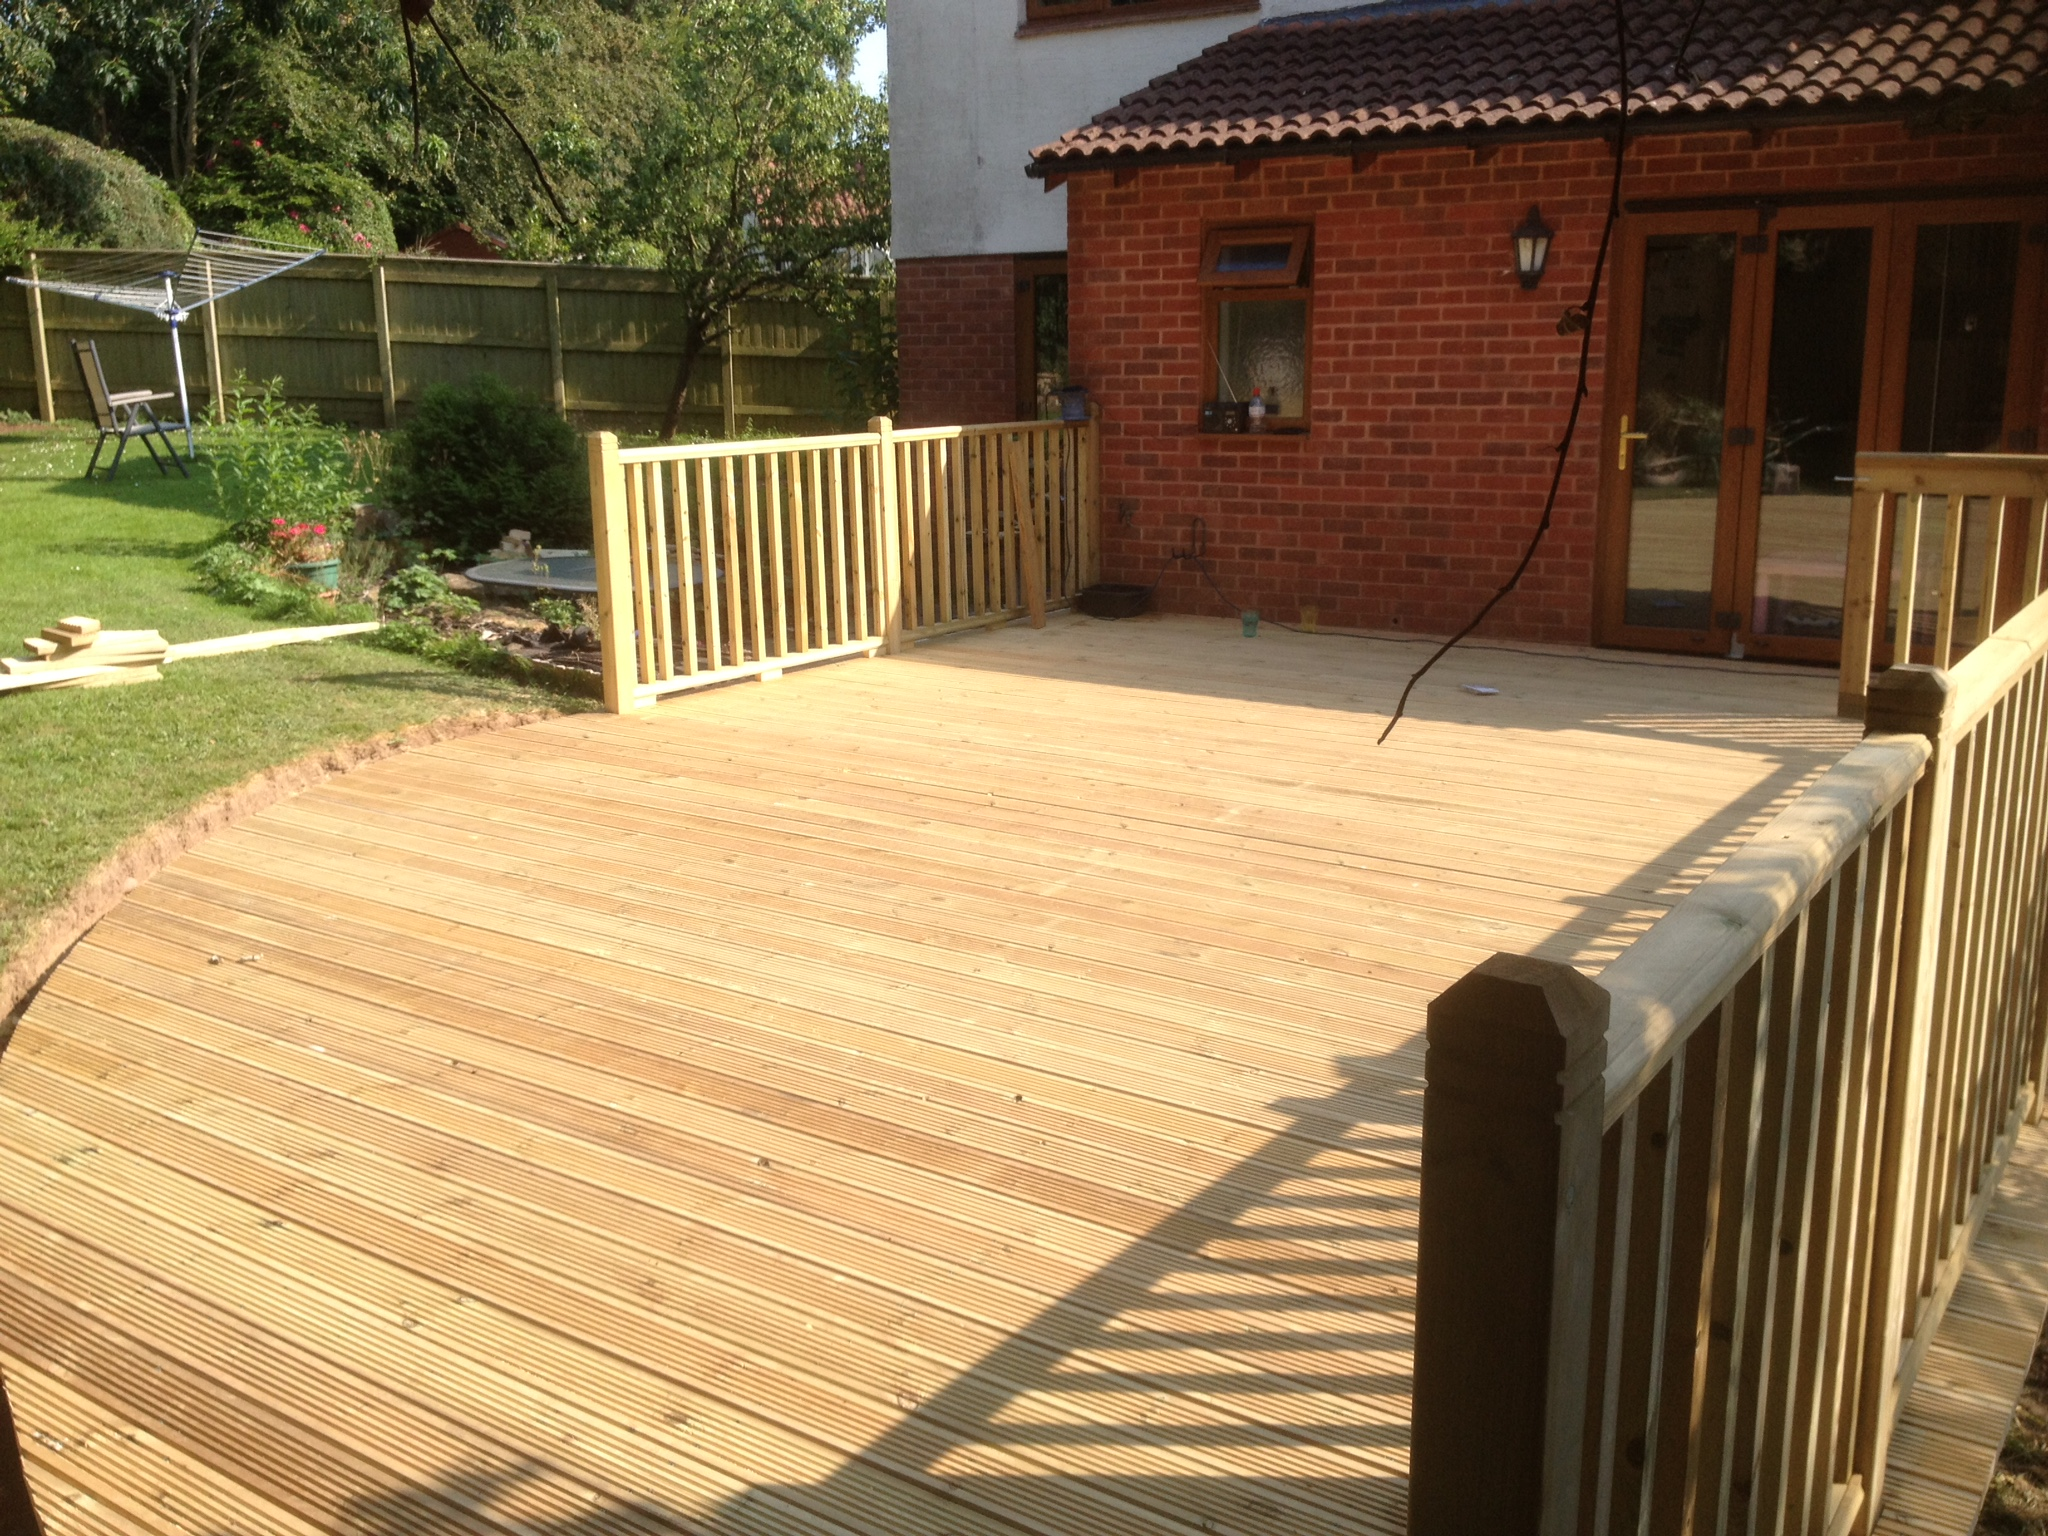 Completed decking from diff angle